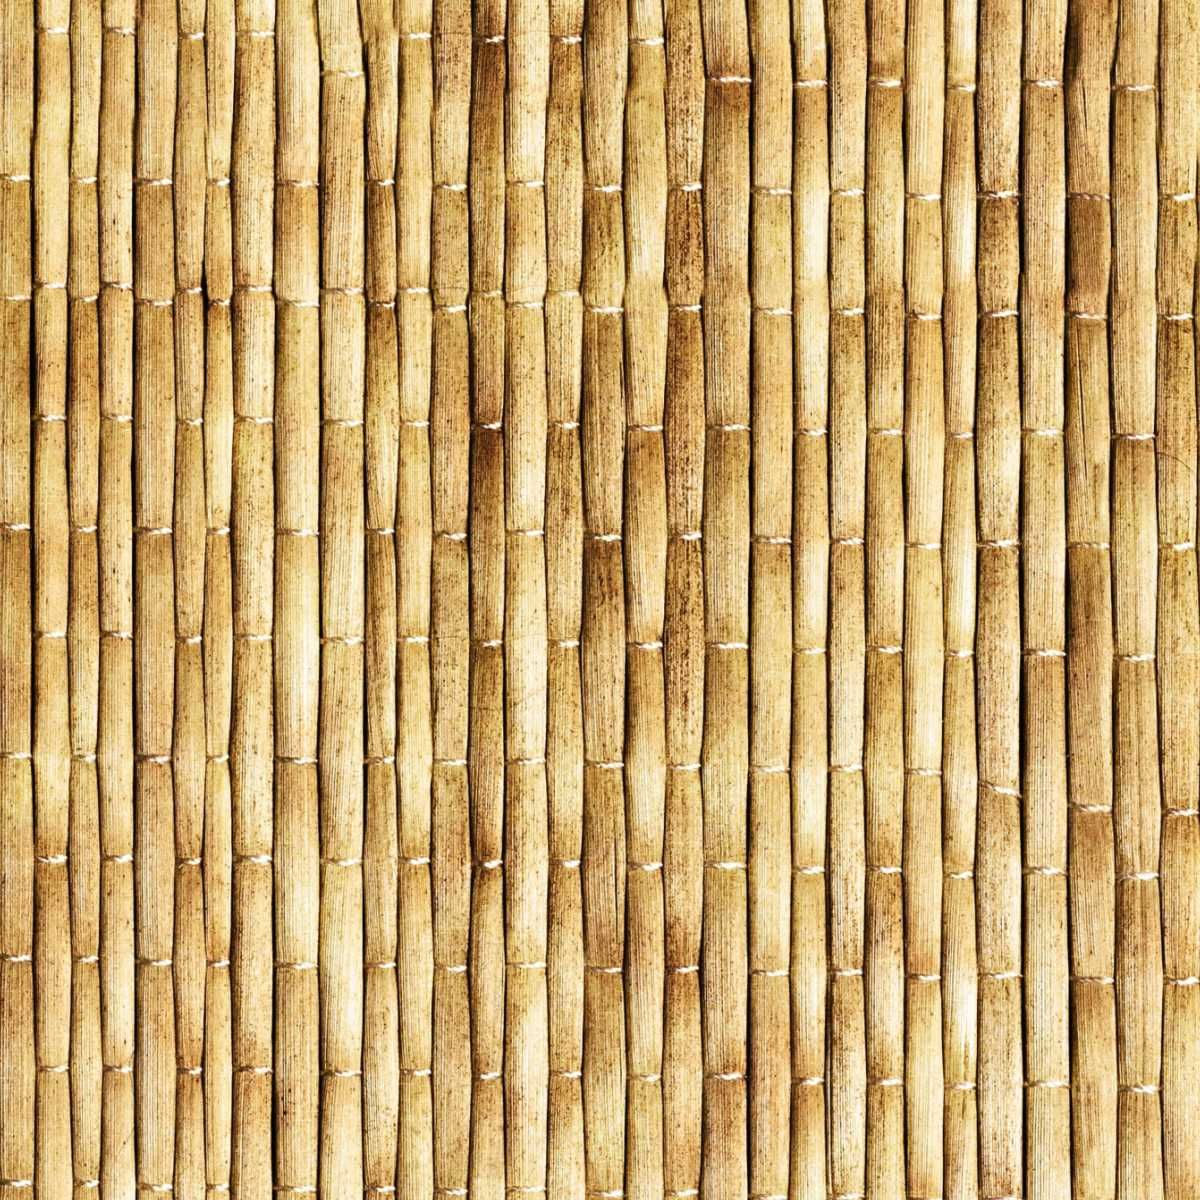 LIGHT BEIGE BAMBOO Light beige colored bamboo woven into a mat ...